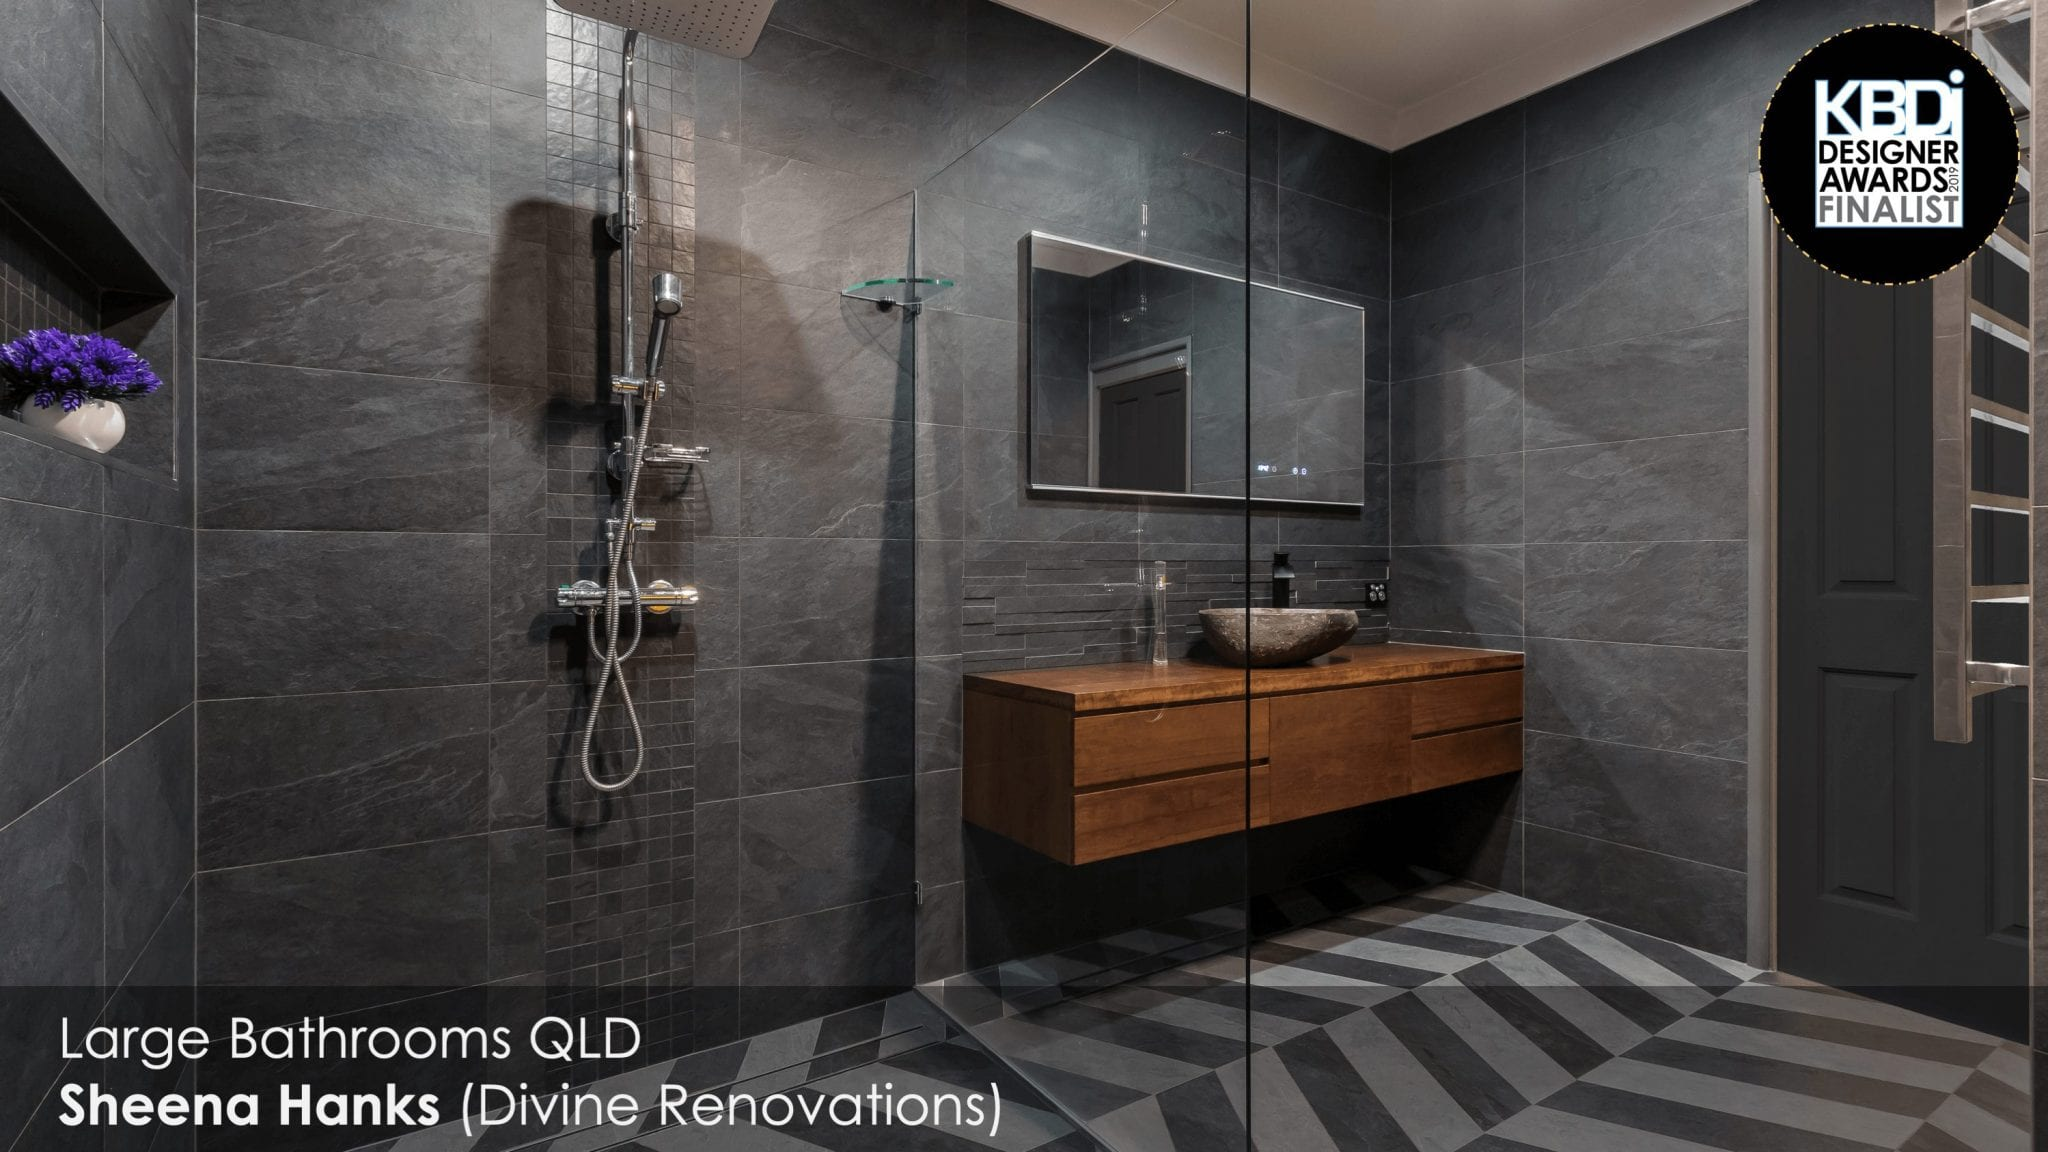 DA2019_Zigzag_Large Bathrooms QLD_Hanks_2 copy